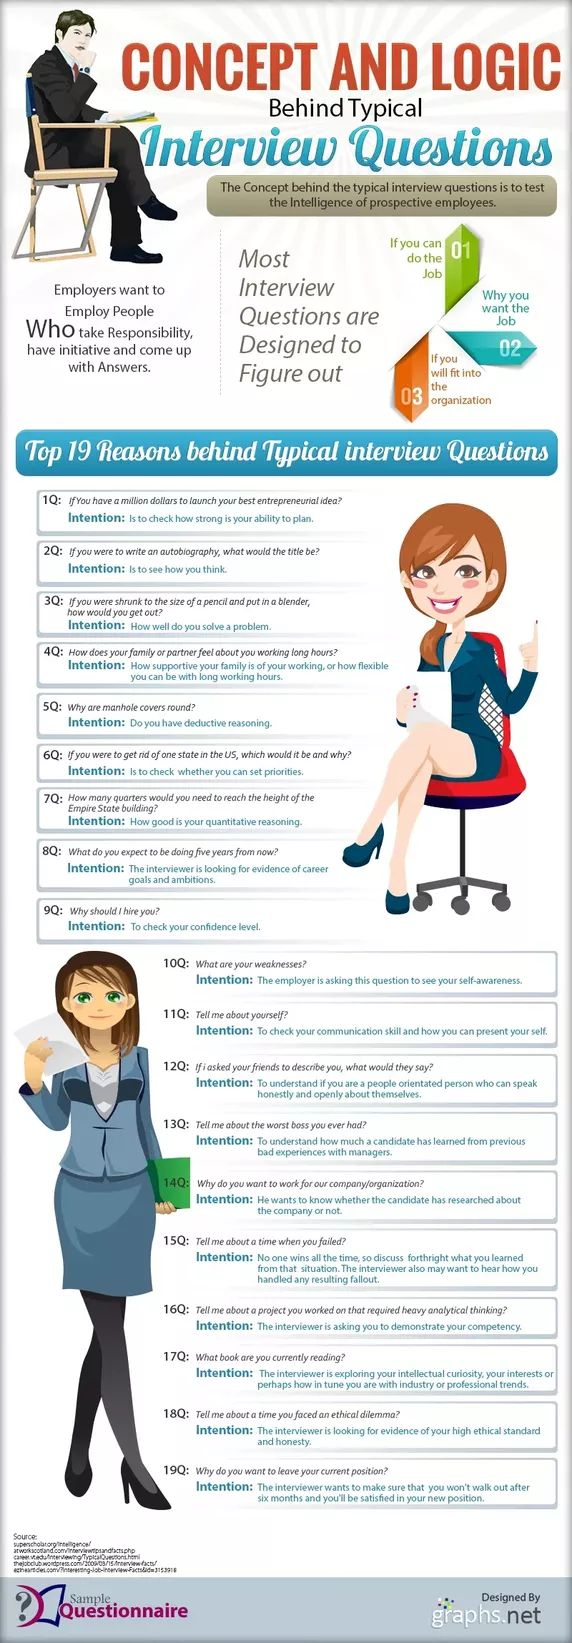 What are the best interview questions that are tricky and require presence of mind to answer them? - Quora